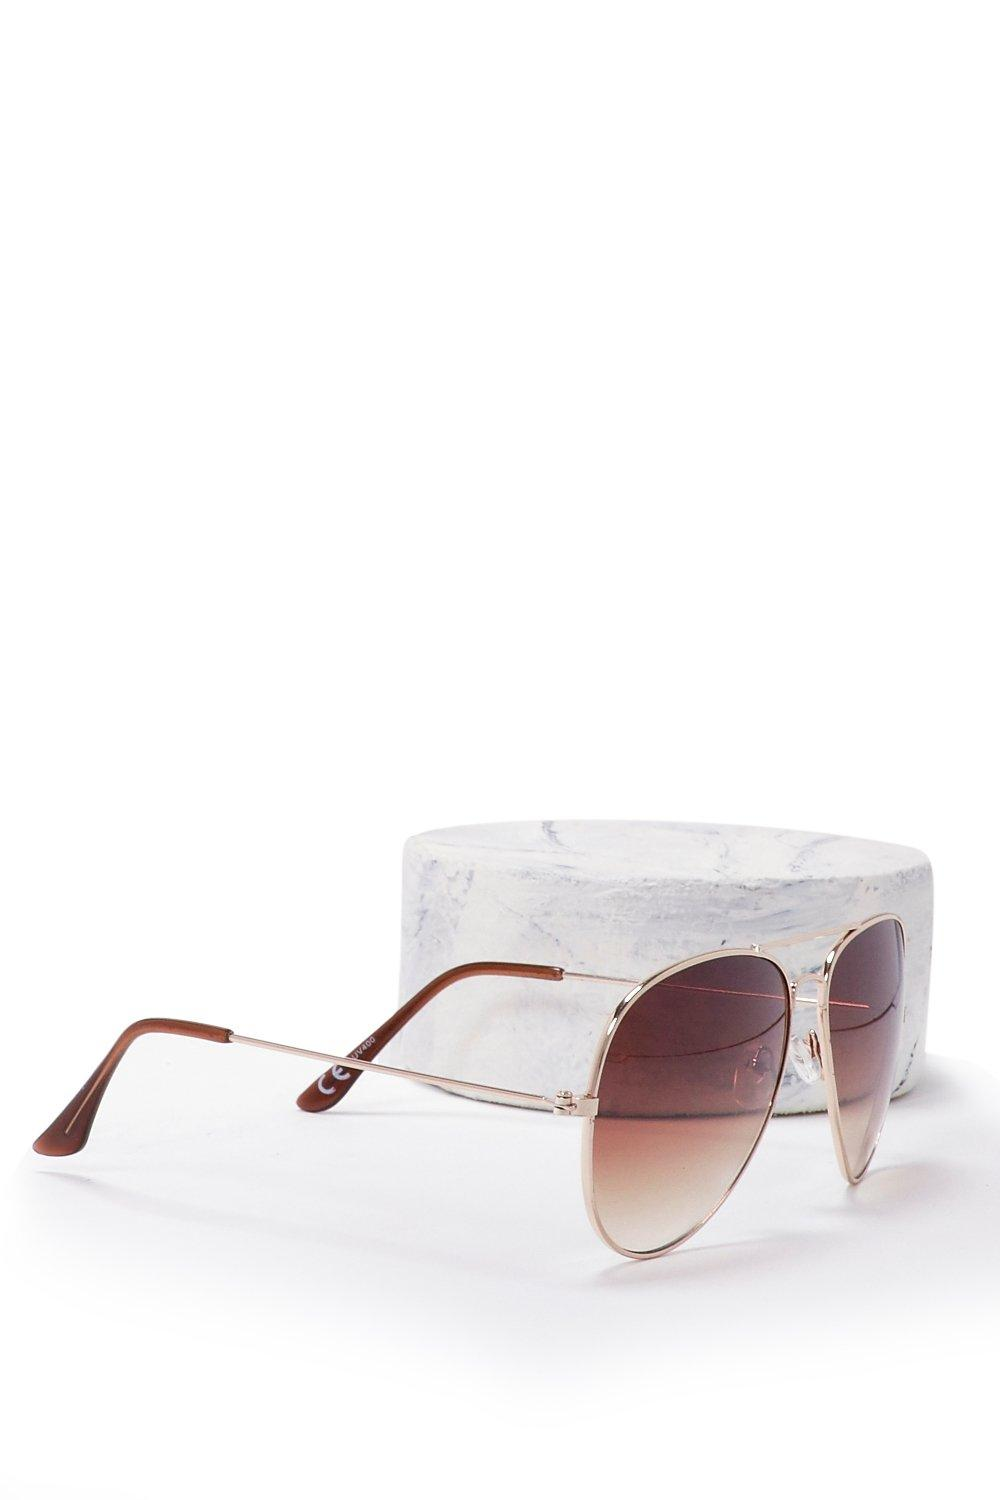 0d0855a4214e Who s That Girl Aviator Shades